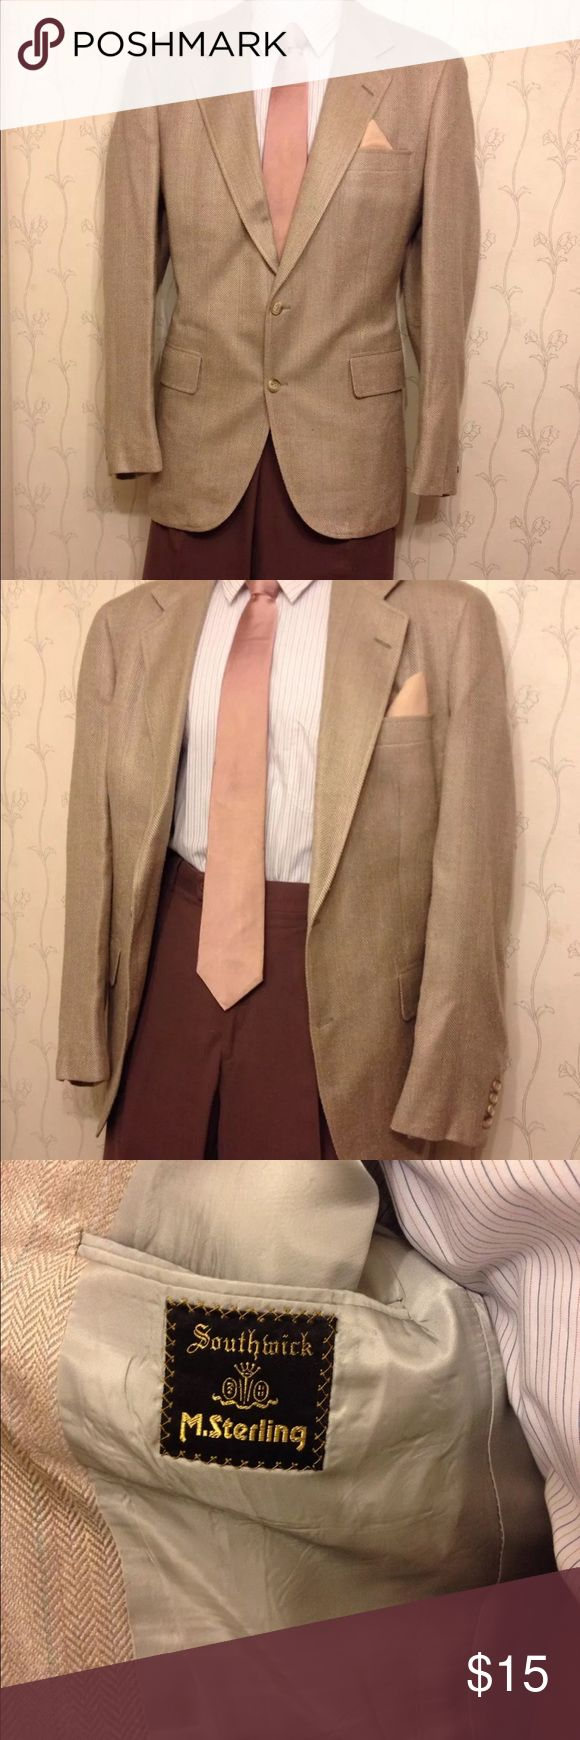 MEN'S SOUTHWICK SINGLE BREASTED SUIT- 42 R Jacket: •Designer: Southwick •2 Pockets on inside, 1 pocket for handkerchief, 2 Pockets on outside •Single Breasted: Yes •Cuffs have 4 buttons sewn onto jacket •Color: Beige with multi-colors •Size: Regular 42 •Length: 30 1/2 inches •Chest (underarm to underarm): 44 inches •Waist: 40 inches •Sleeve Length: 25 inches •Shoulder/ Back width (from seam to seam): 18 inches •Lined: Yes •Material: unknown Suits & Blazers Suits